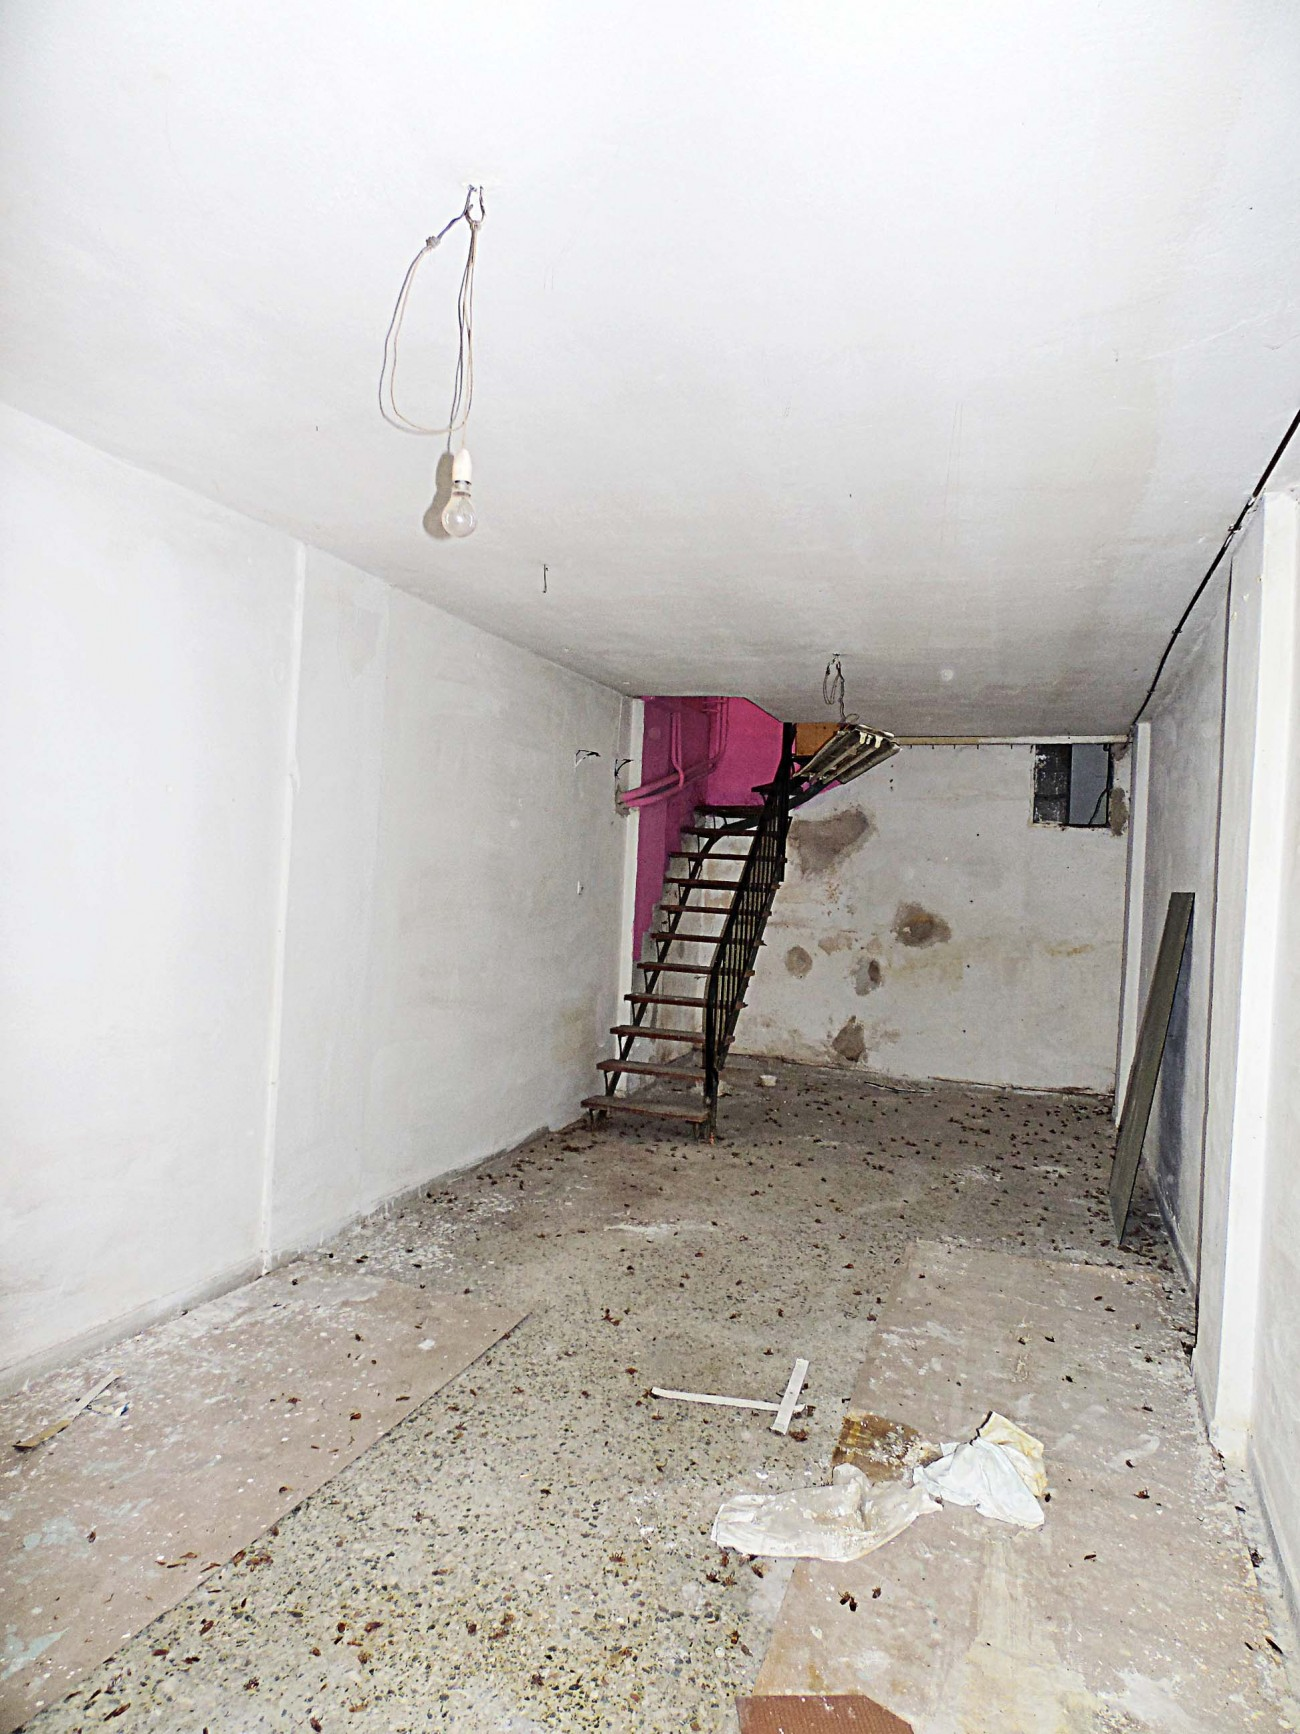 Shop for Rent in Kipseli, Athens City Center, Greece